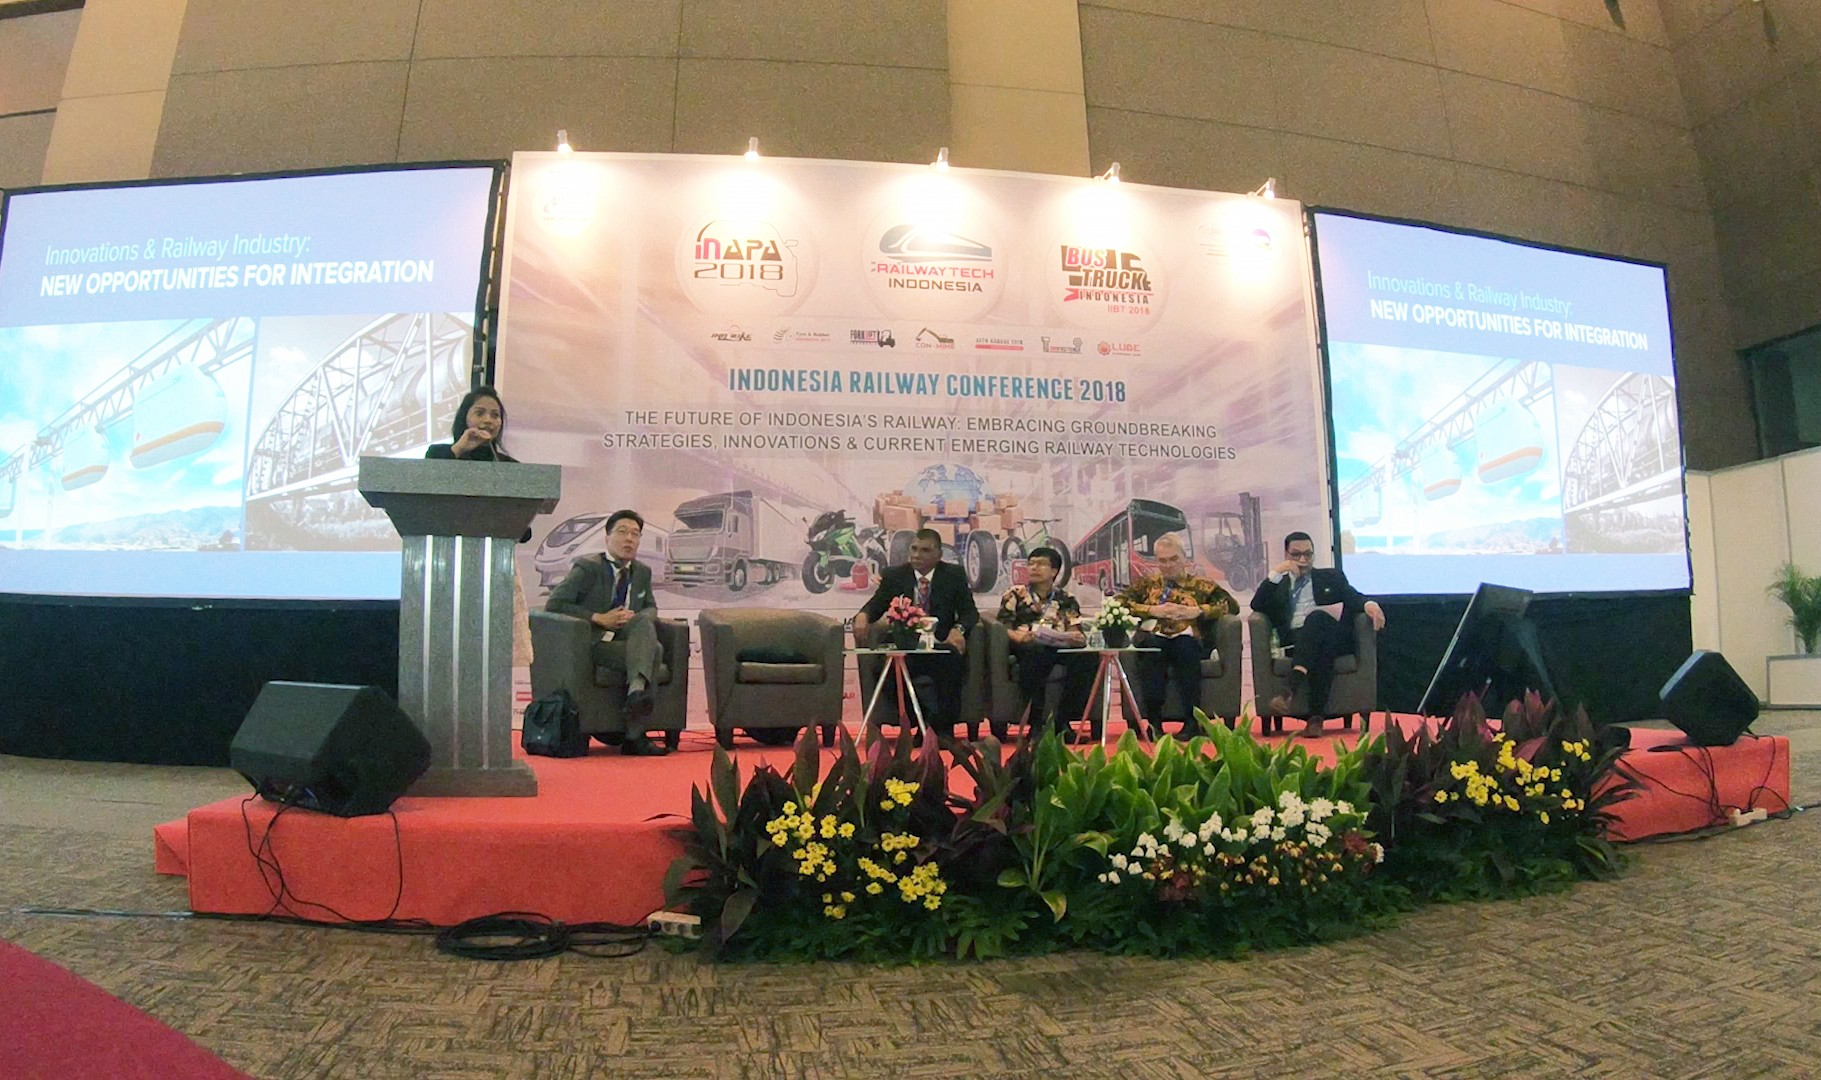 SkyWay, Sky Way, SkyWay in Belarus Yunitsky, string transport, technology, RailwayTech Indonesia 2018, SkyWay technology, Madinatul Fadhilah, exhibition